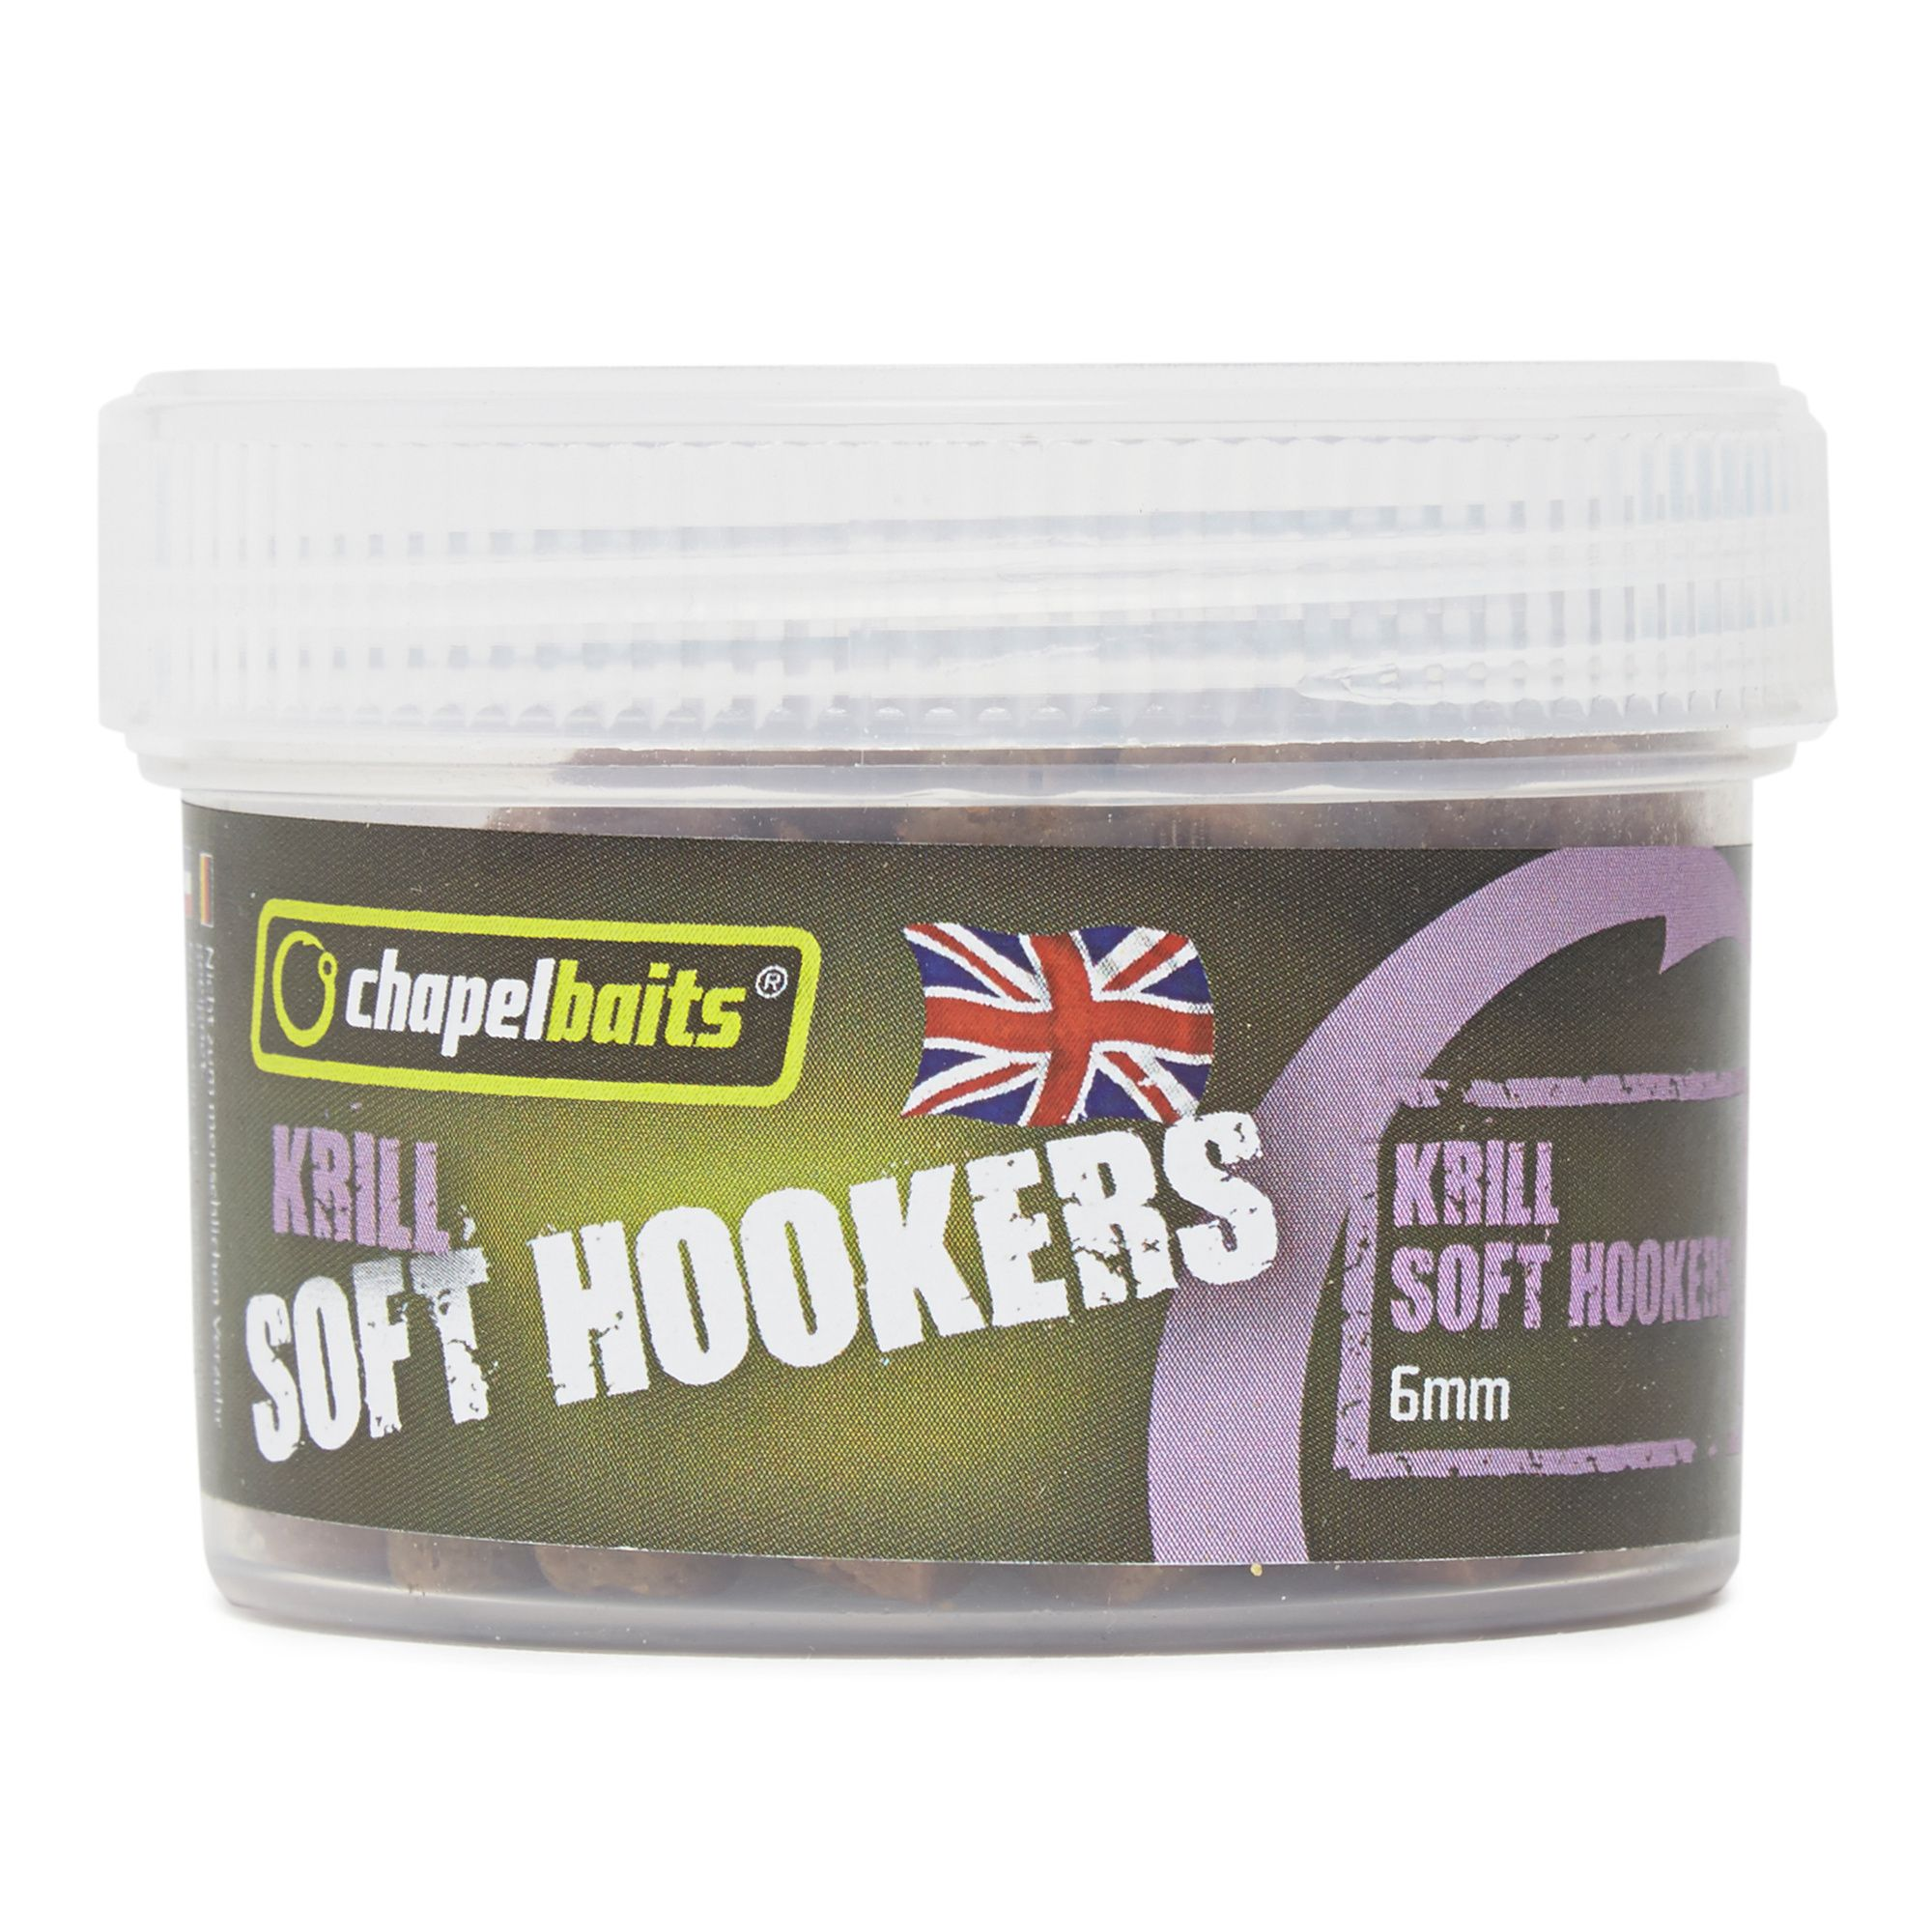 CHAPEL BAITS 6mm Soft Hooker Pellets, Krill